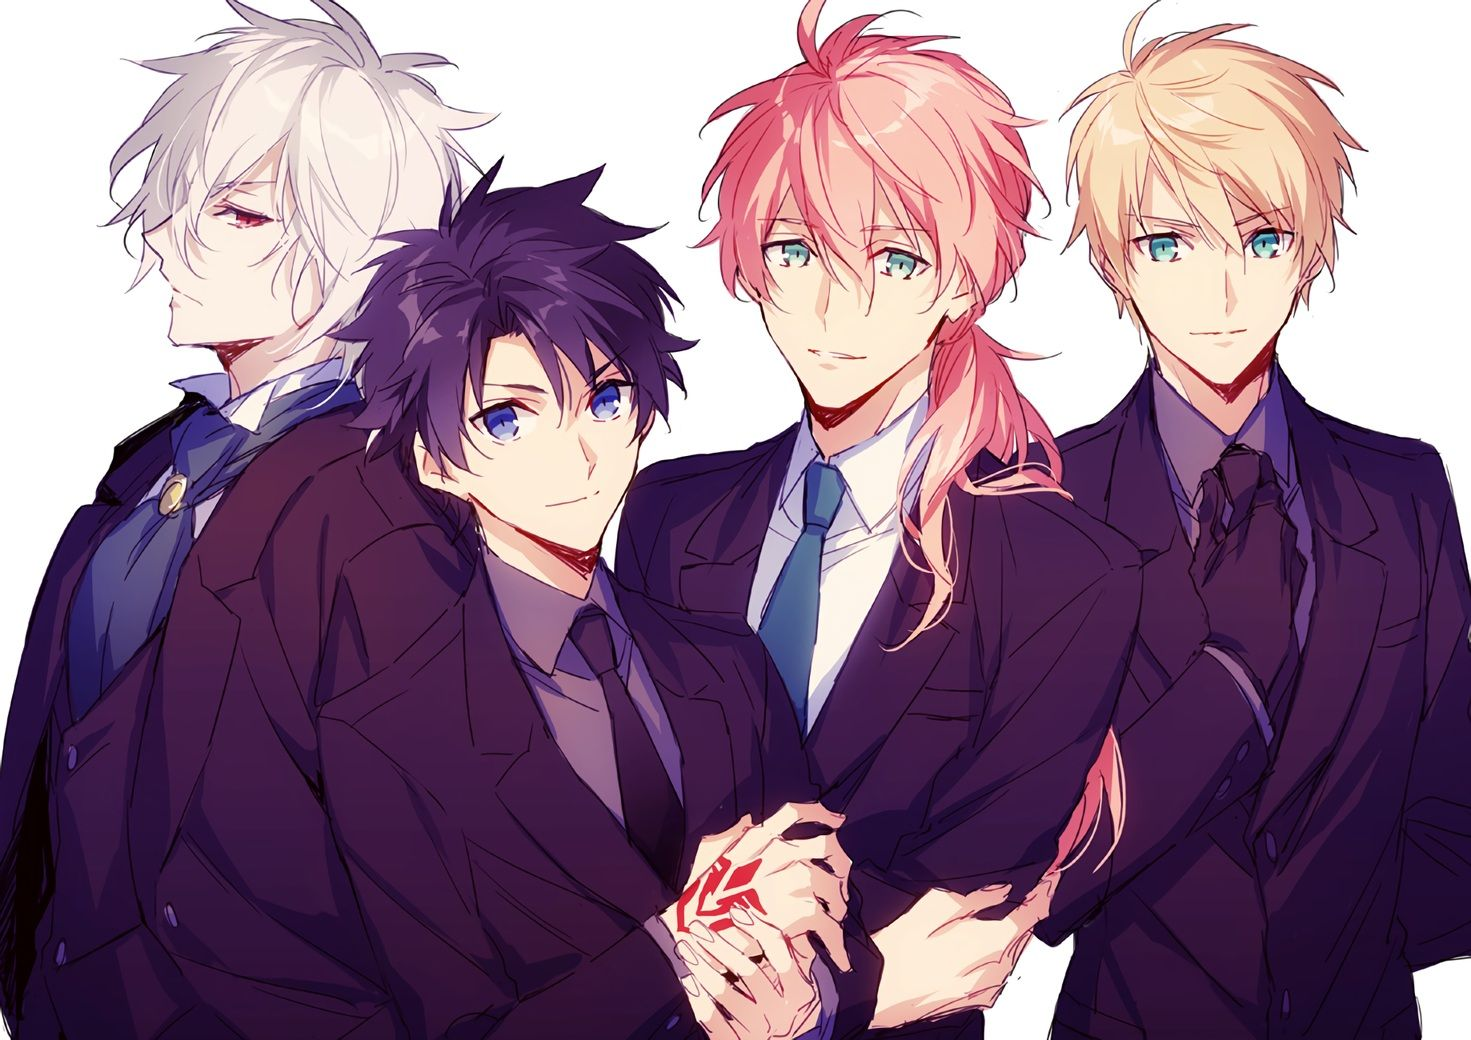 All Male Aqua Eyes Black Hair Blonde Hair Blue Eyes Edmond Dantes Fate Grand Order Fate Series Fujimaru Ritsuka Male Gloves Gray Anime Boy Anime Guys Anime